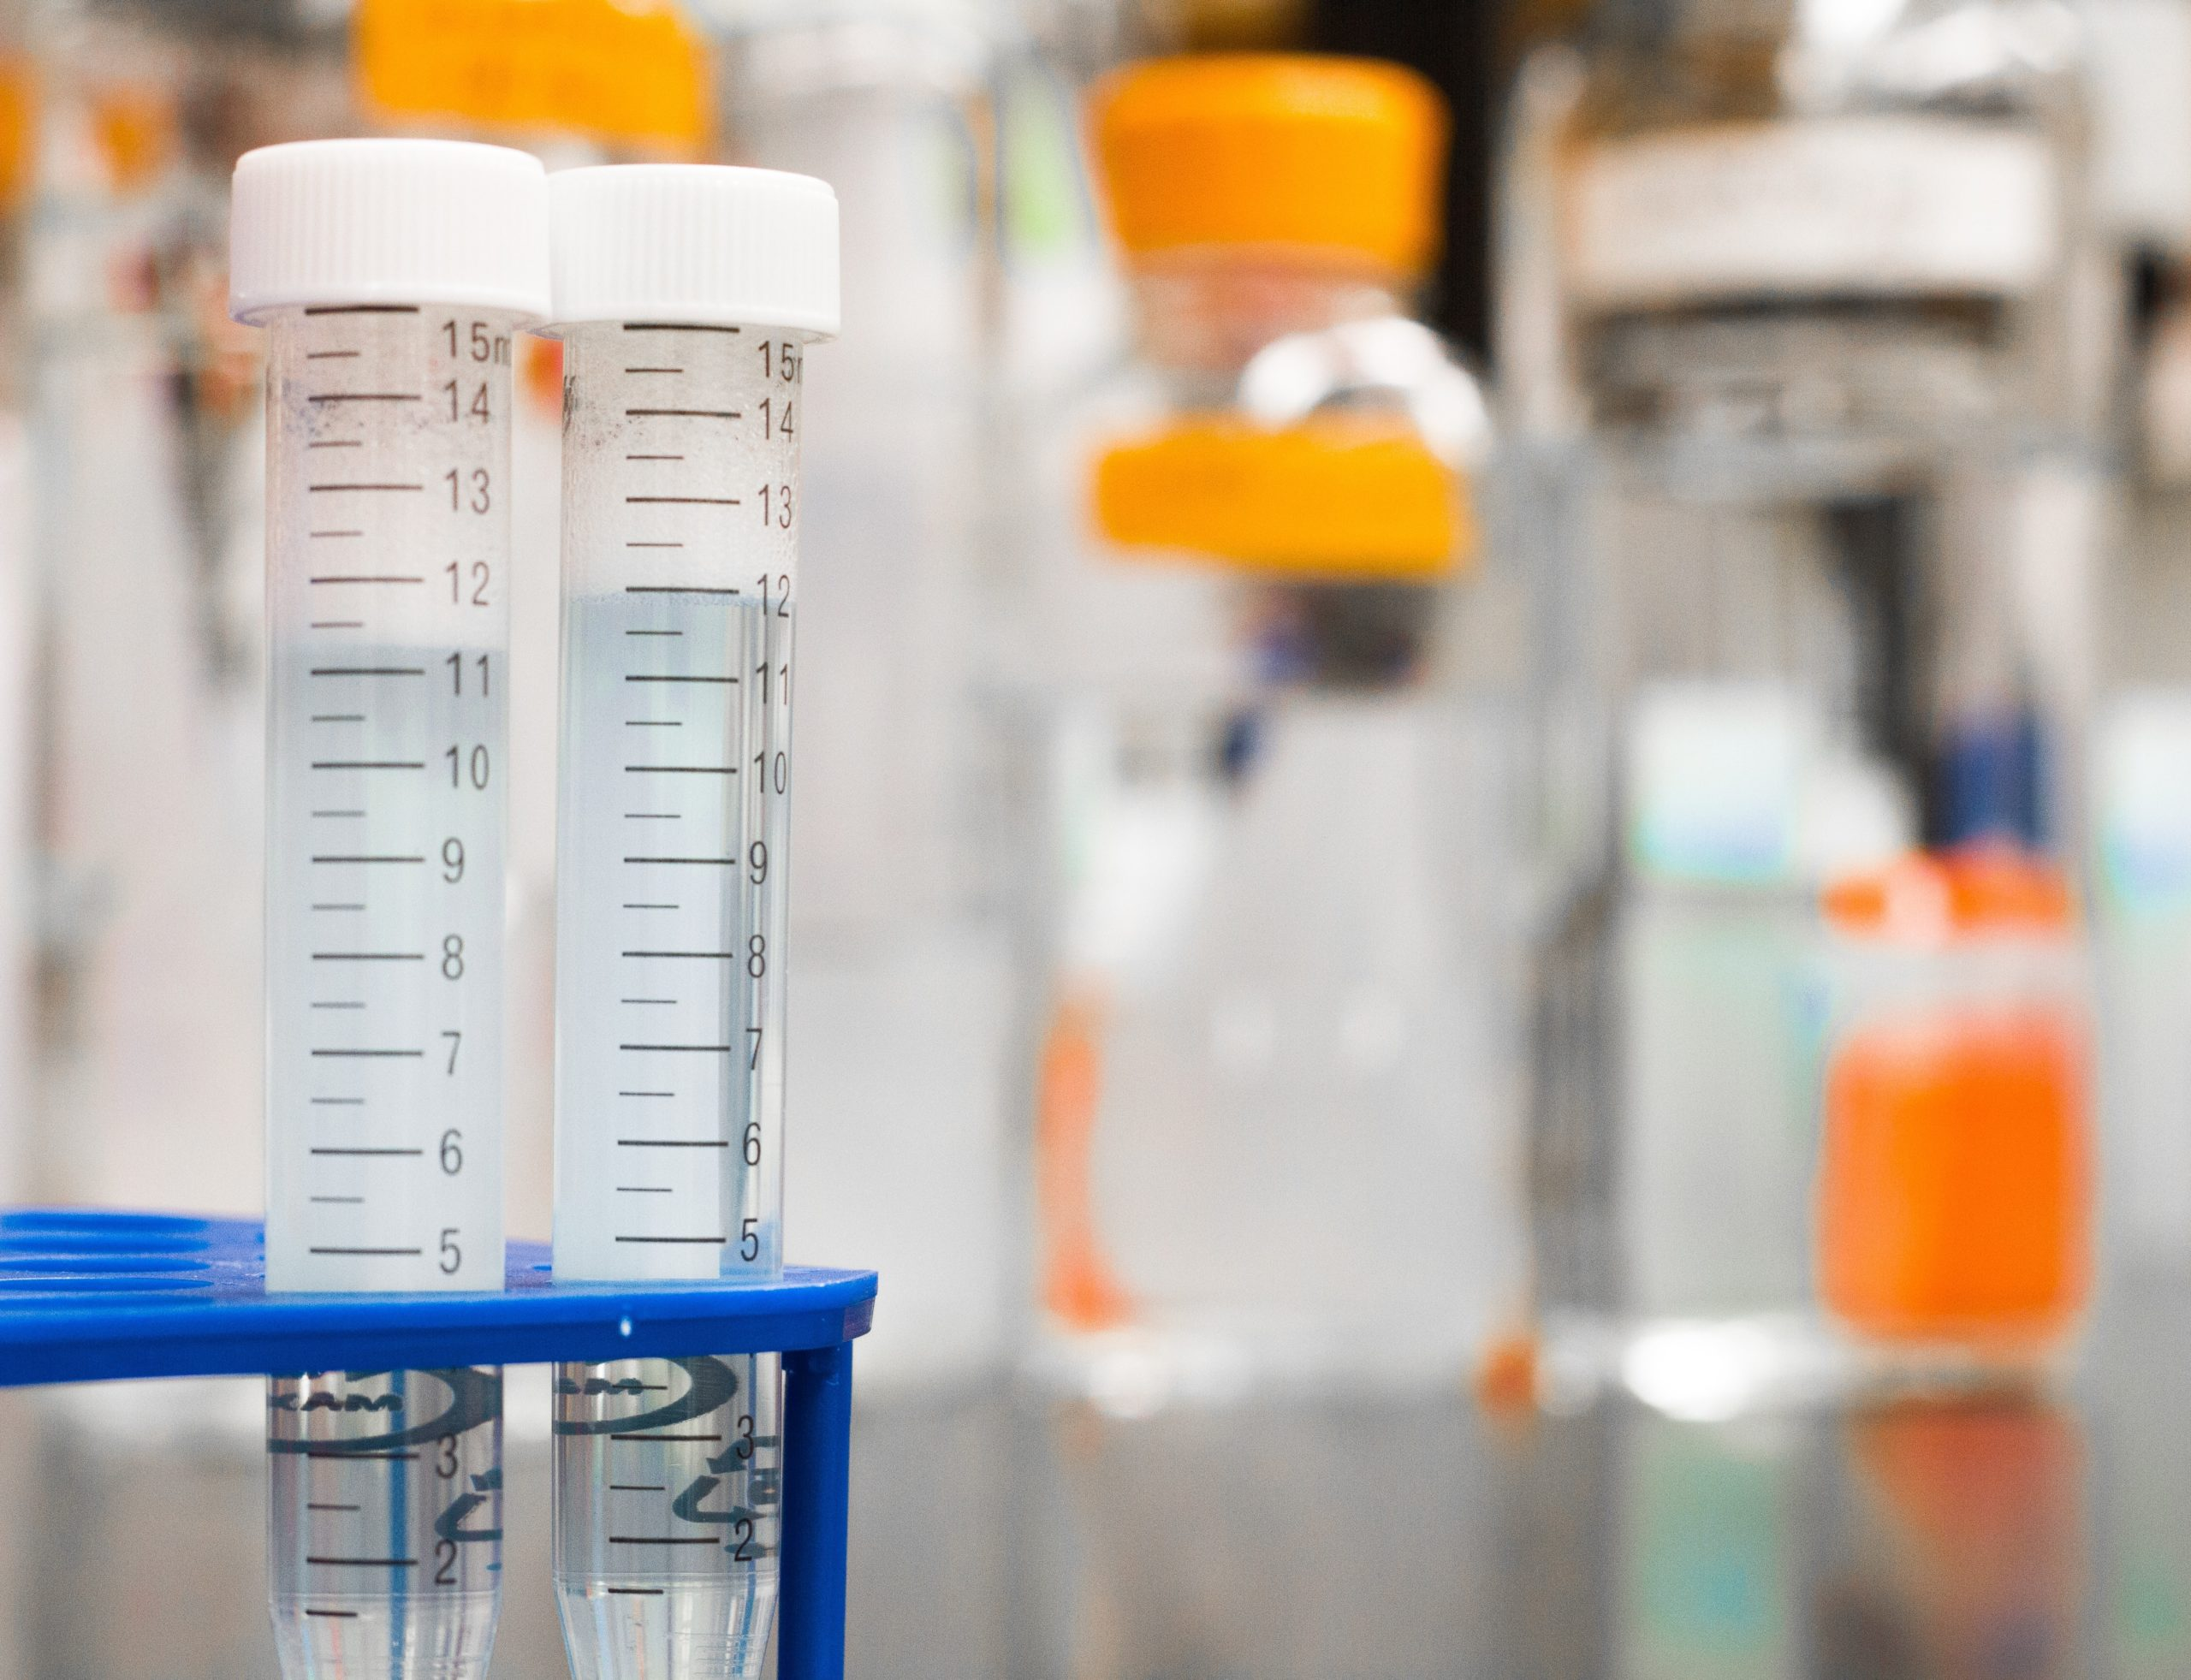 Promising clinical trials aims to detect bladder cancer via a quick liquid biopsy test